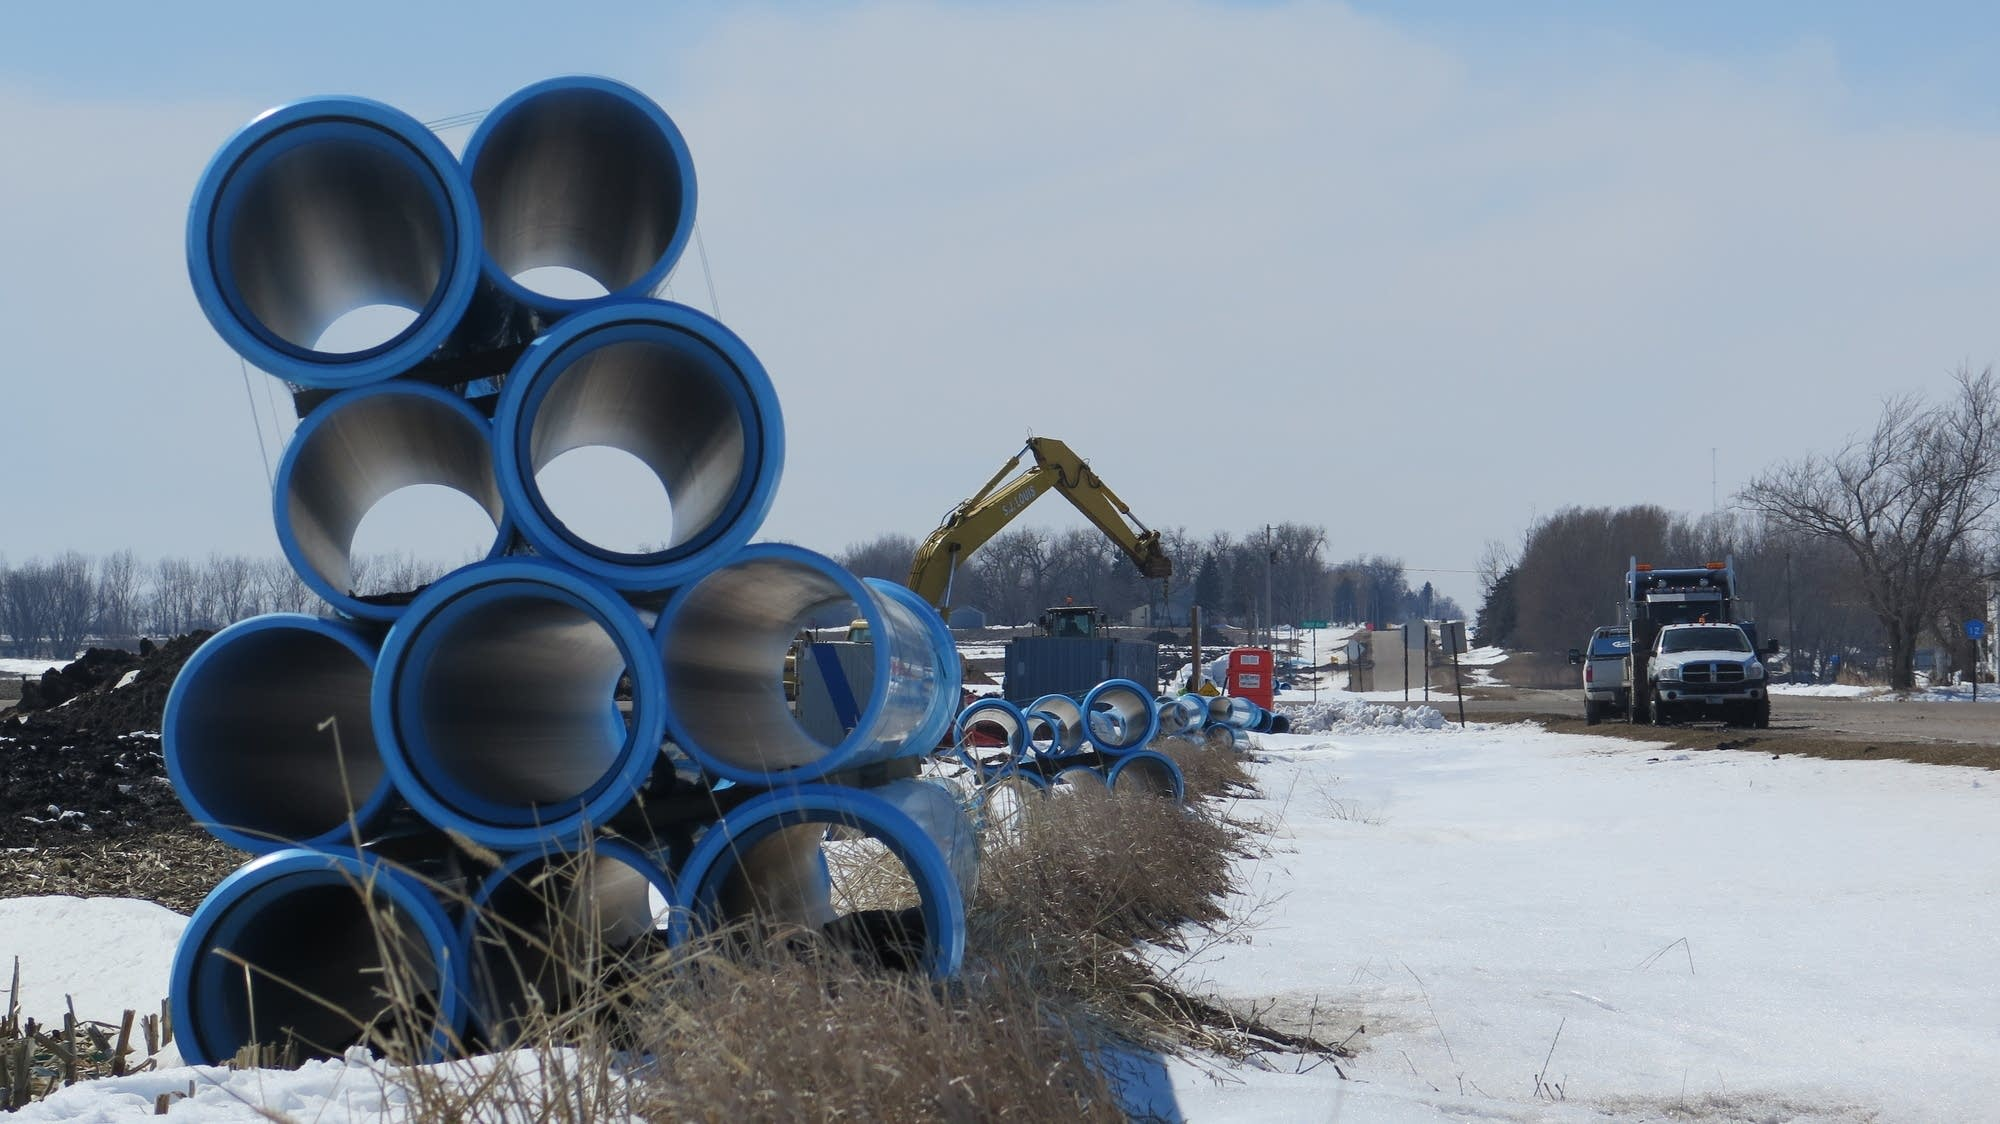 Pipes are stacked near Worthington, Minn.